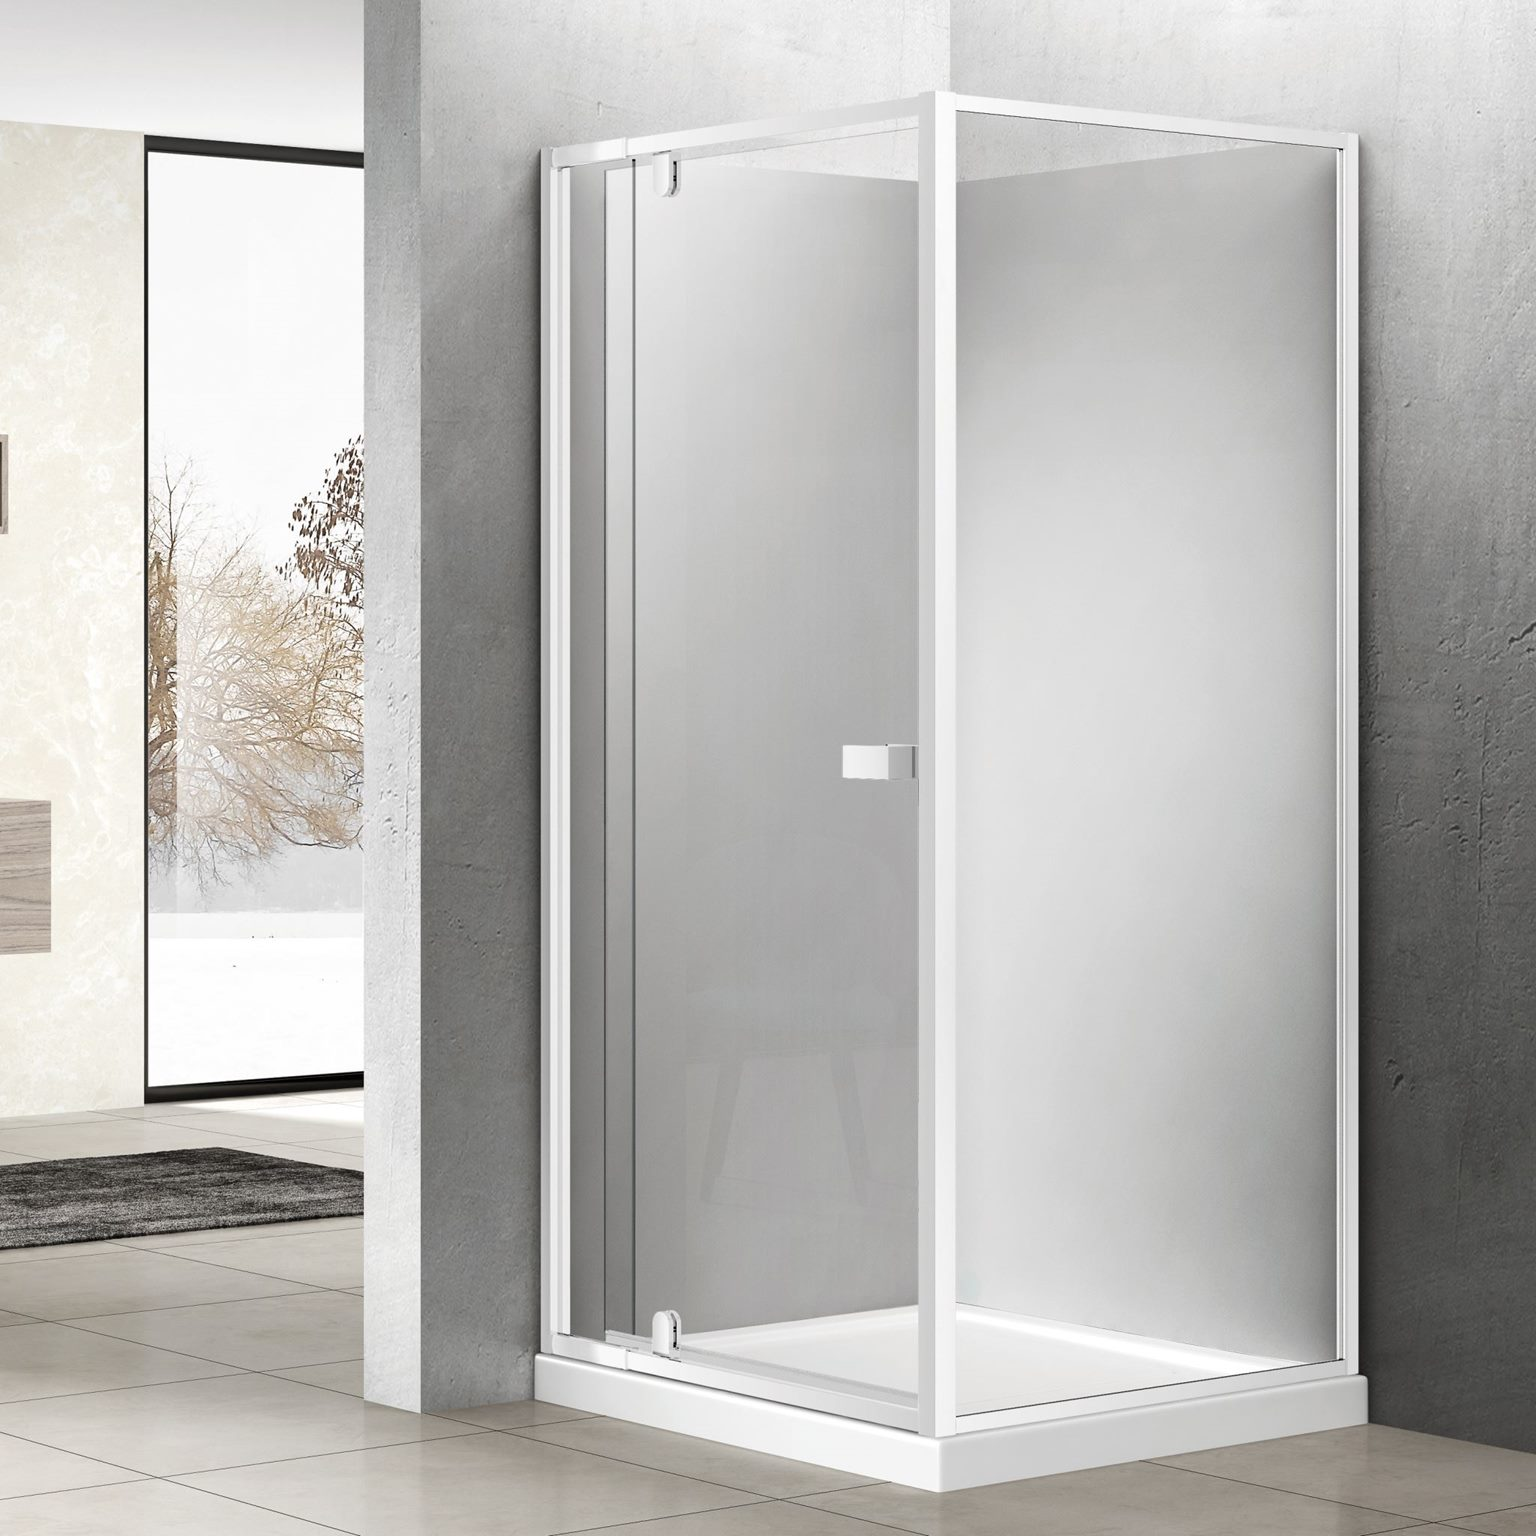 1000mm Pivot Door Square Shower Enclosure